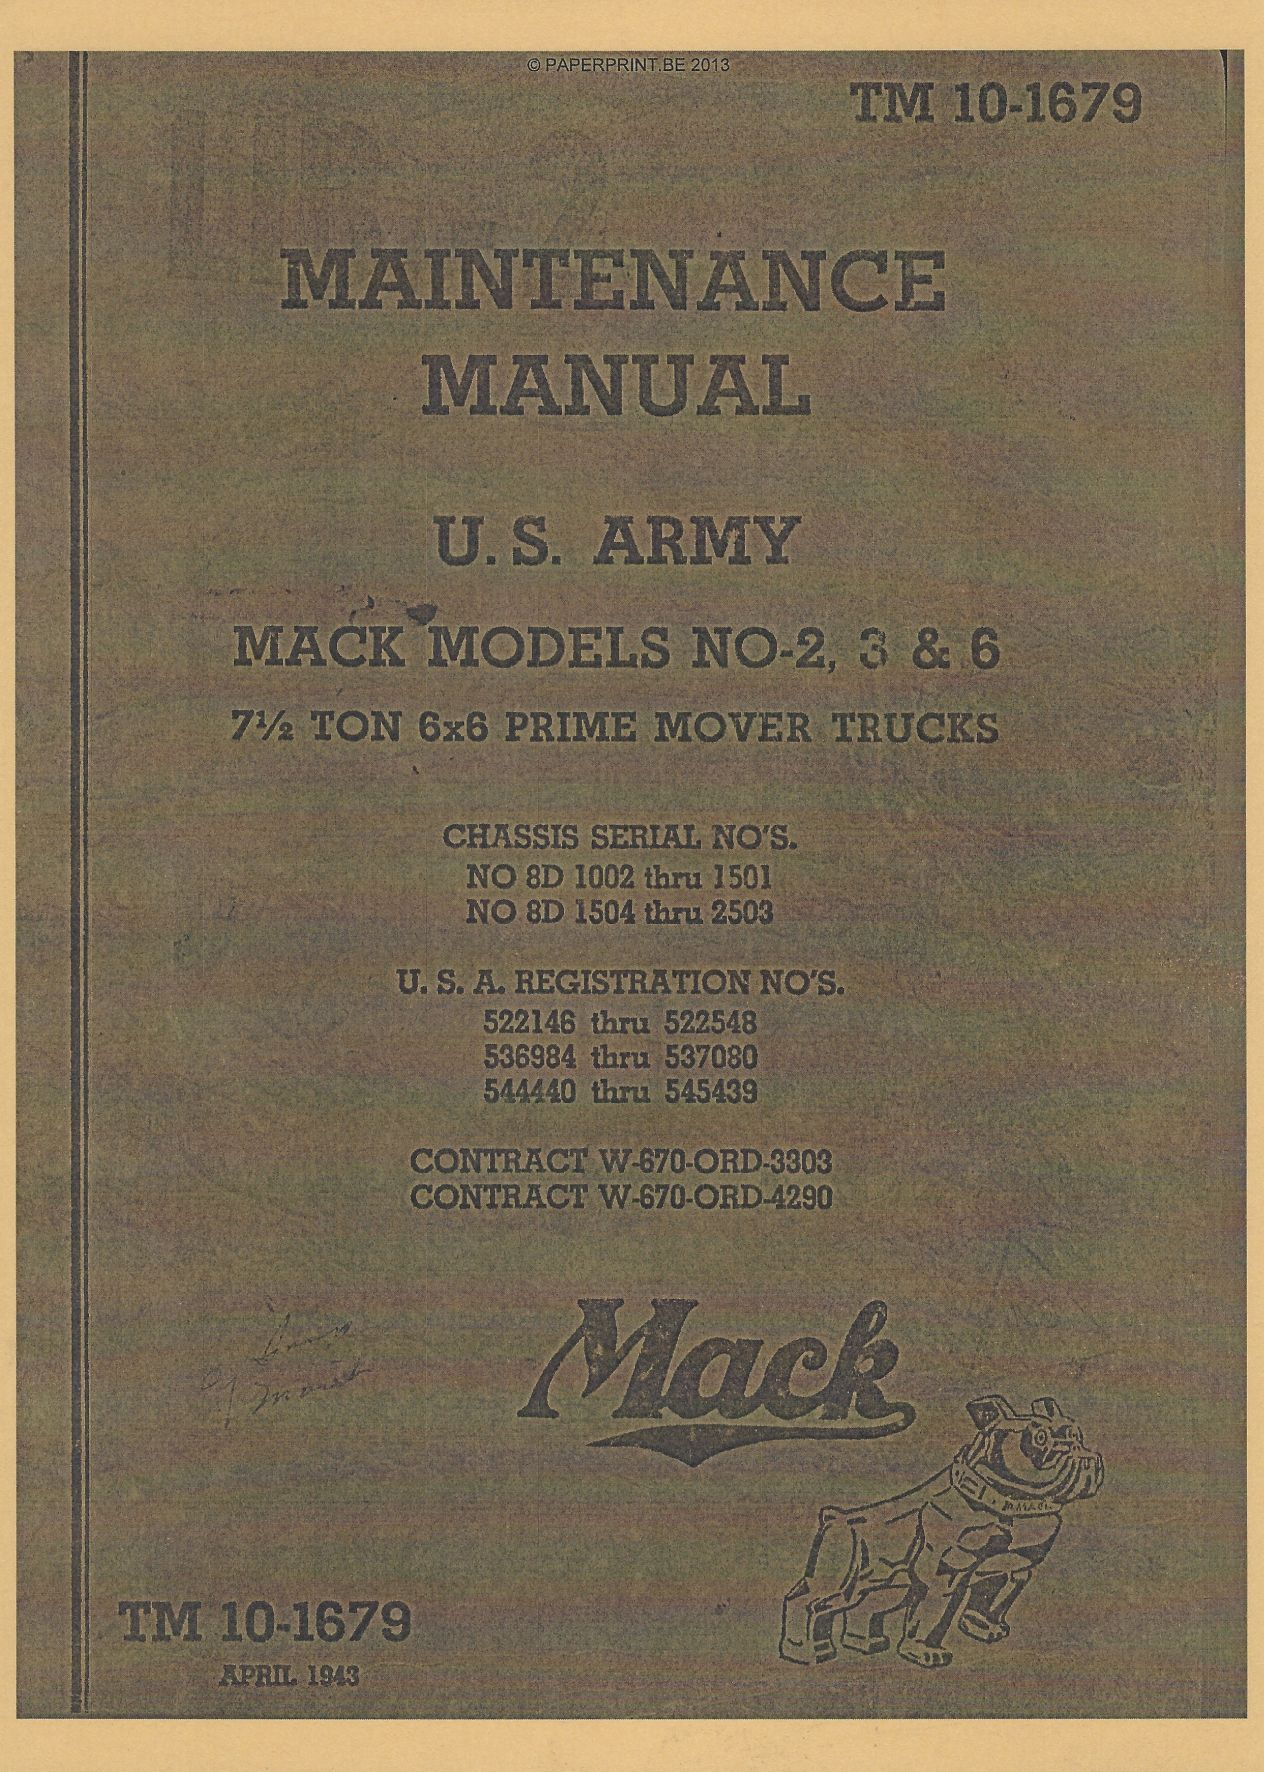 TM 10-1679 US MAINTENANCE MANUAL MACK MODELS NO-2, 3 & 6